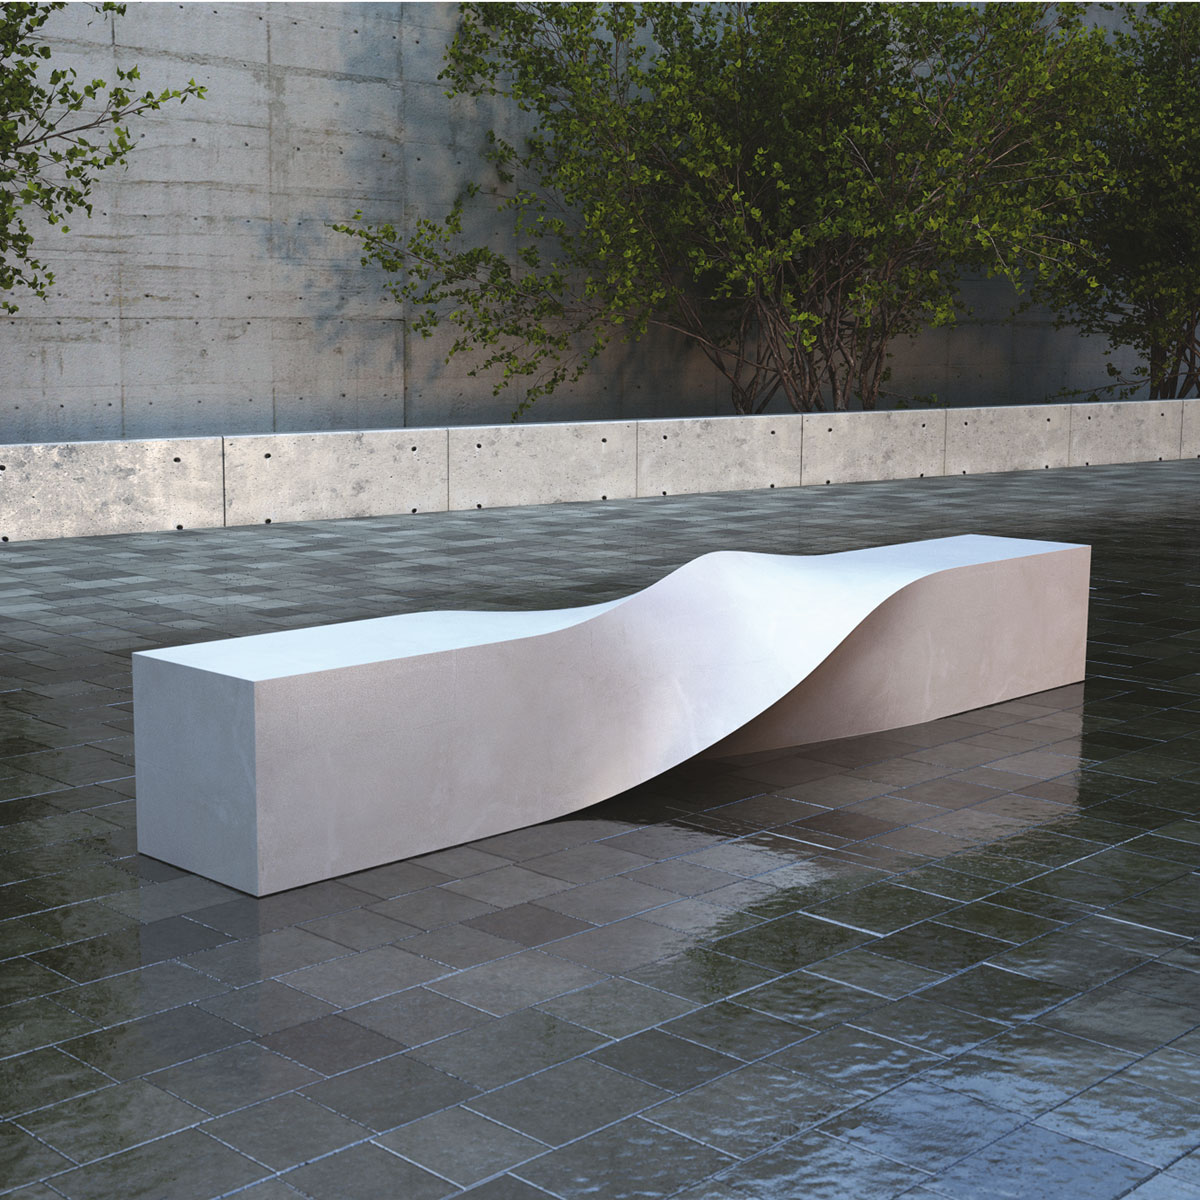 S bench arredo urbano lab23 veronica martinez design